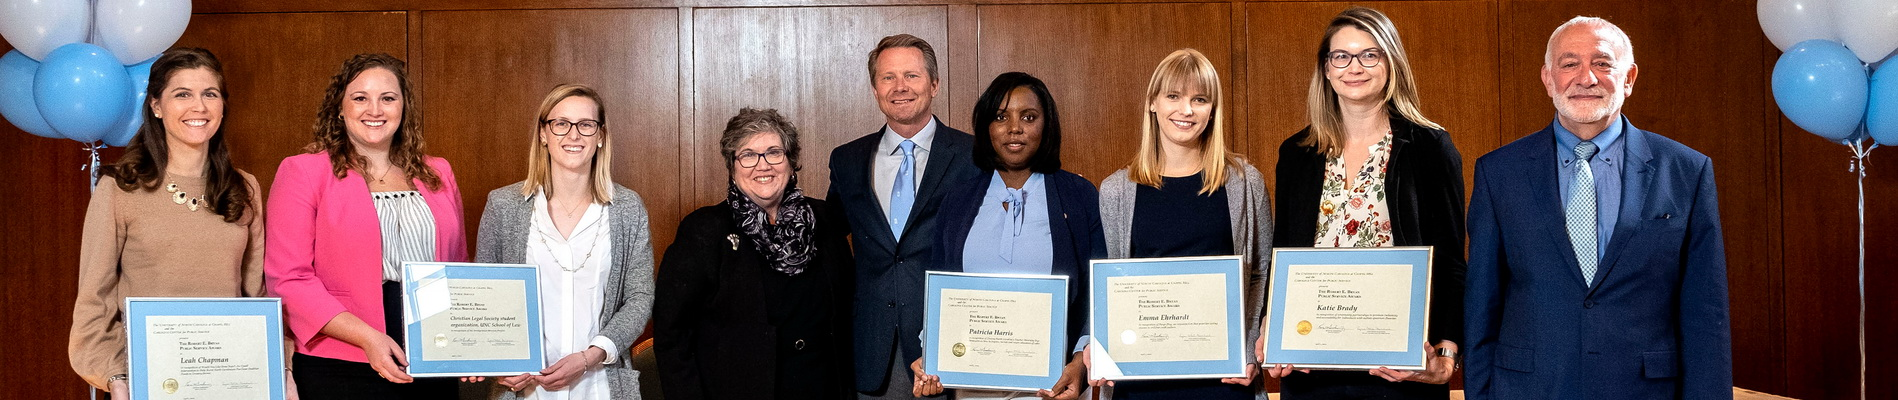 Bryan award recipients stand with awards